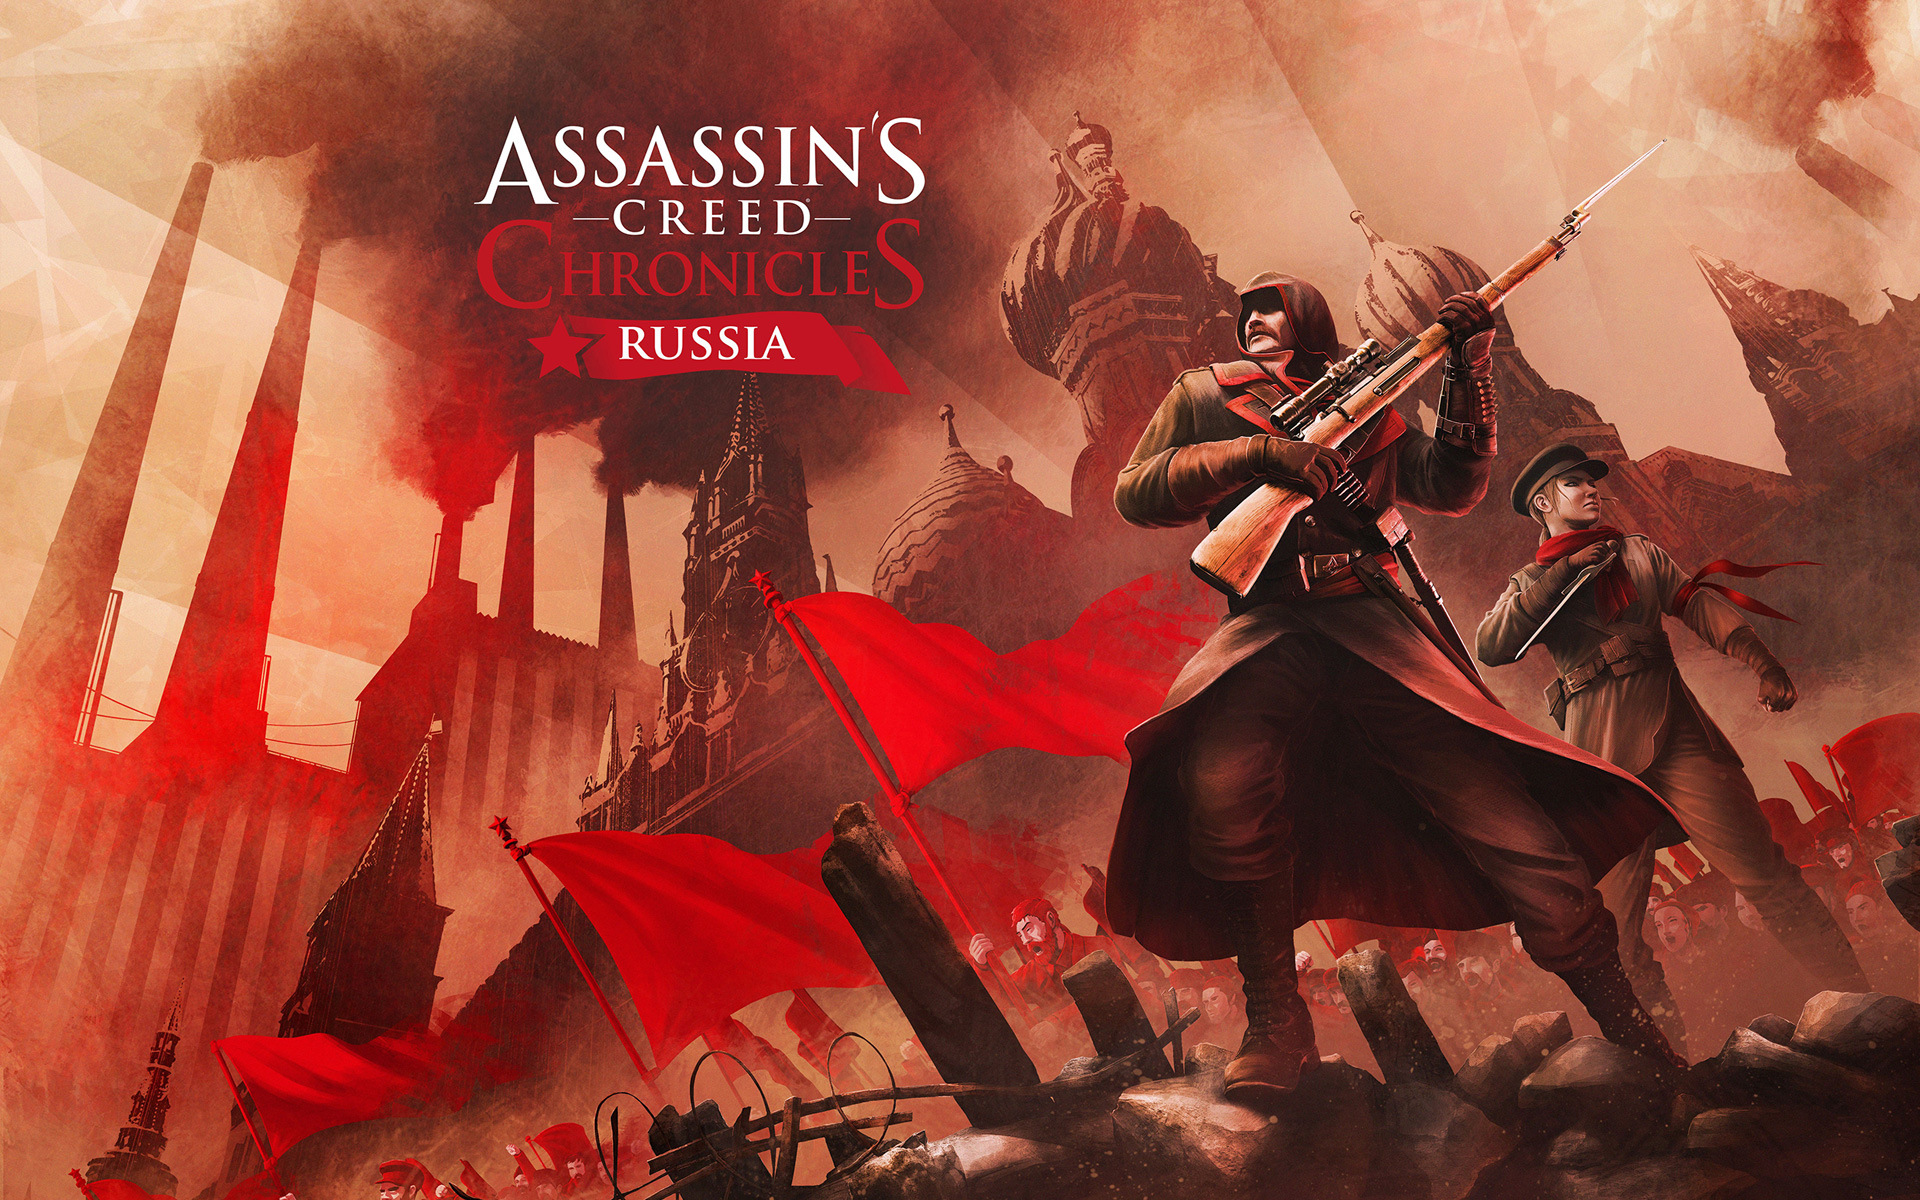 assassins-creed-chronicles-russia-1920x1200.jpg